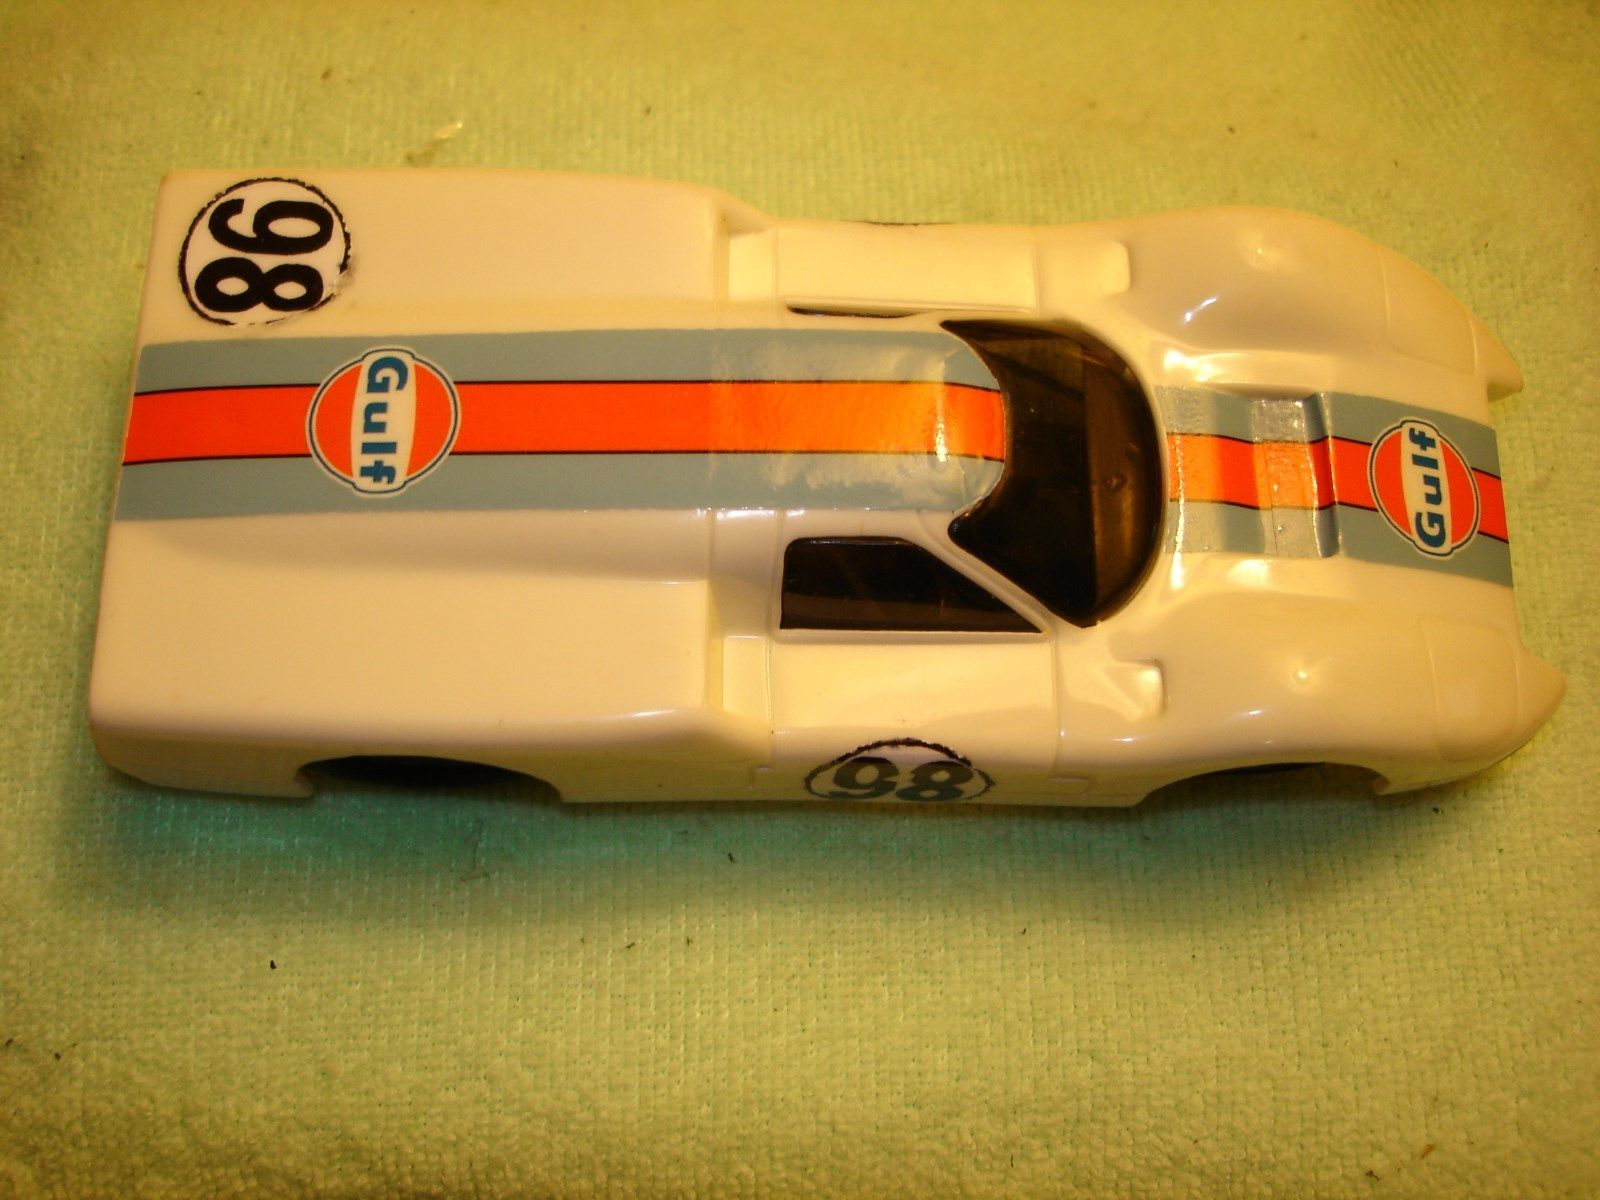 * SOLD * Vintage Eldon Ford J Slot Car 1/32 Scale – Gulf Racing